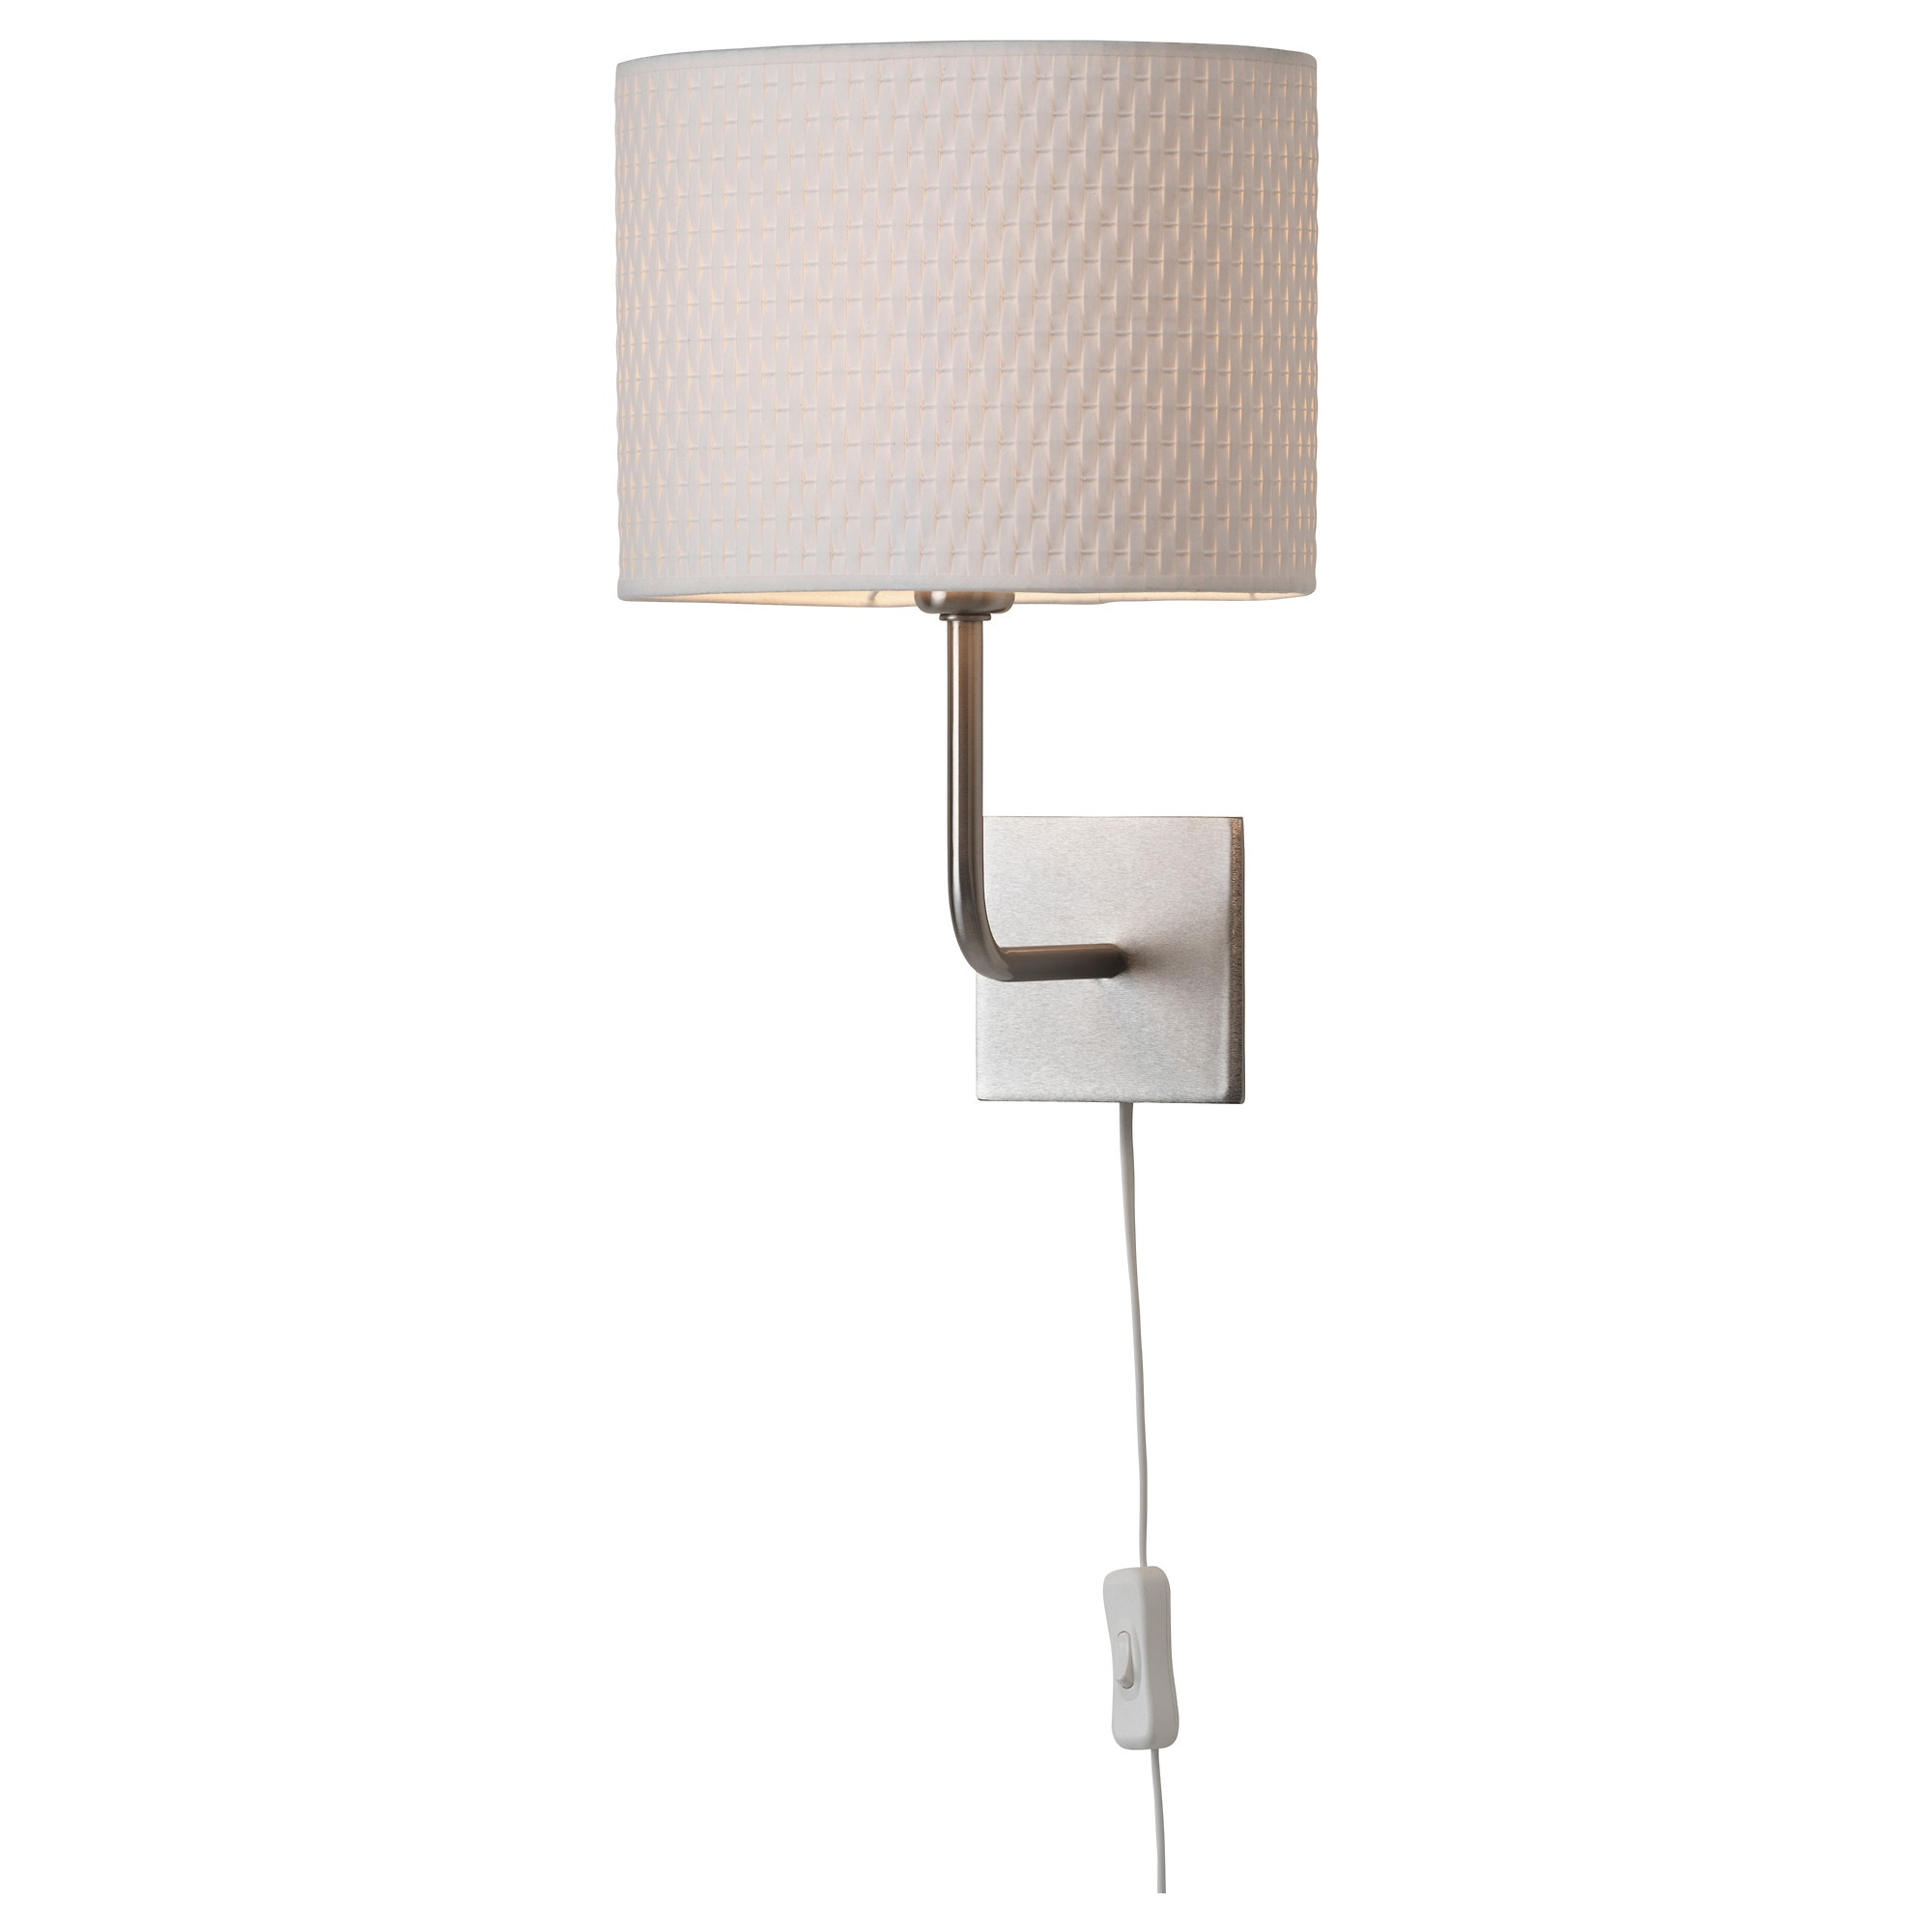 ikea wall lighting fixtures. ikea wall lighting fixtures c